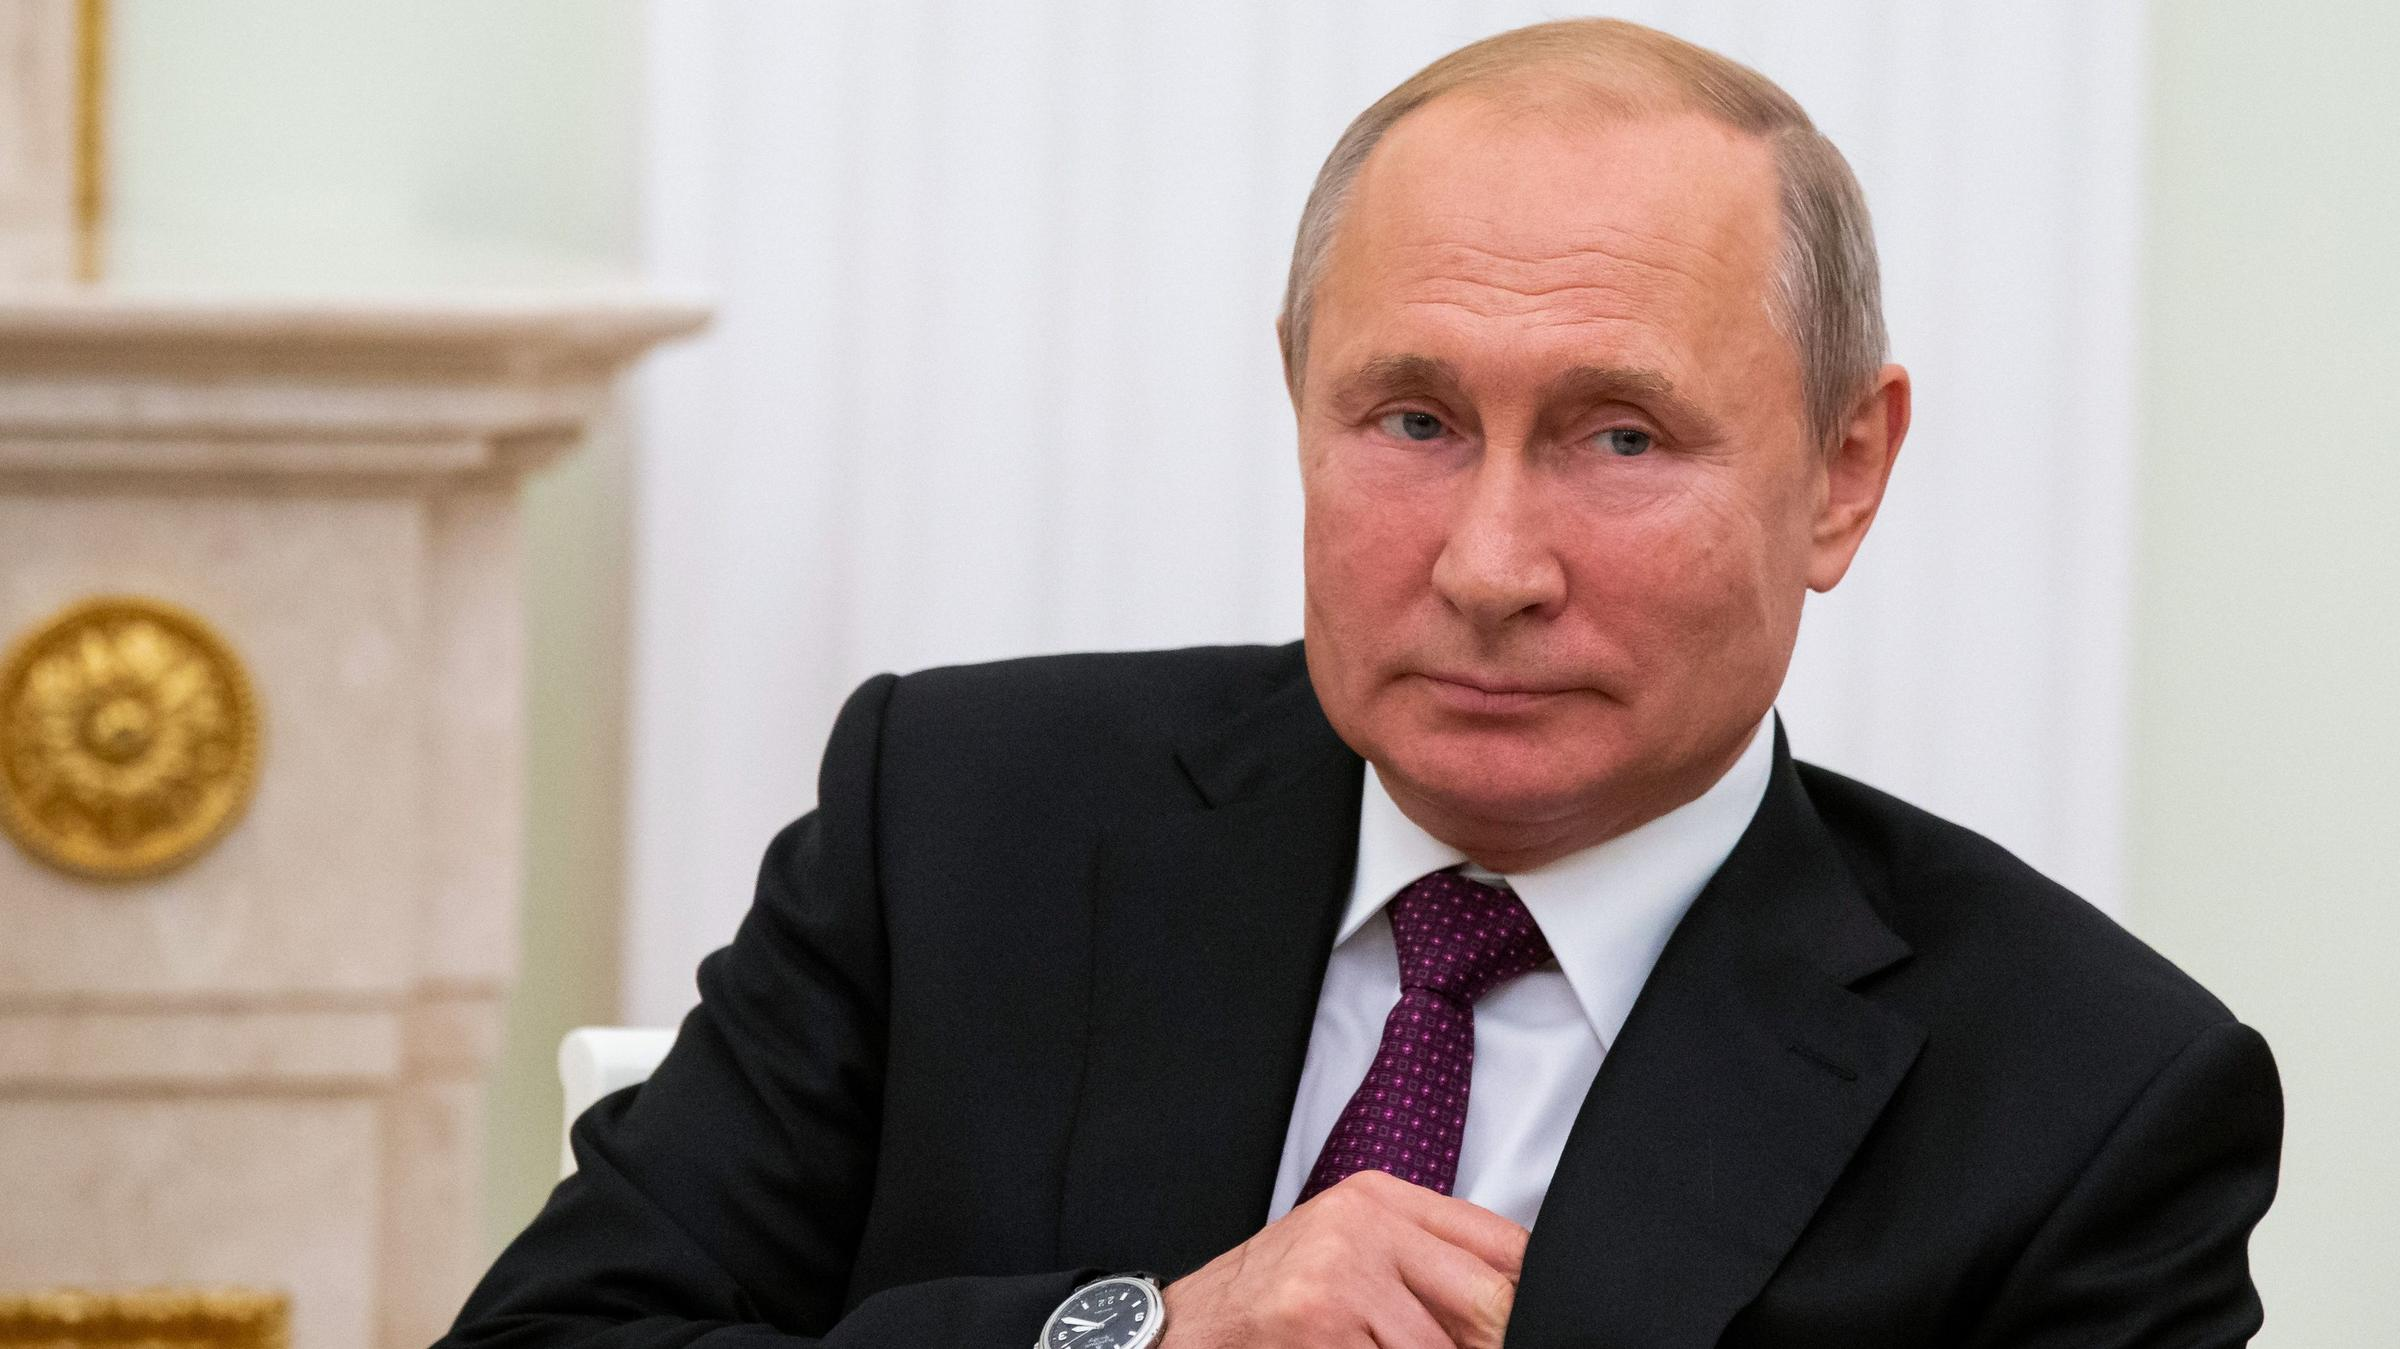 Putin To Russian Military: 'Prepare A Symmetrical Response' To U.S. Missile Test